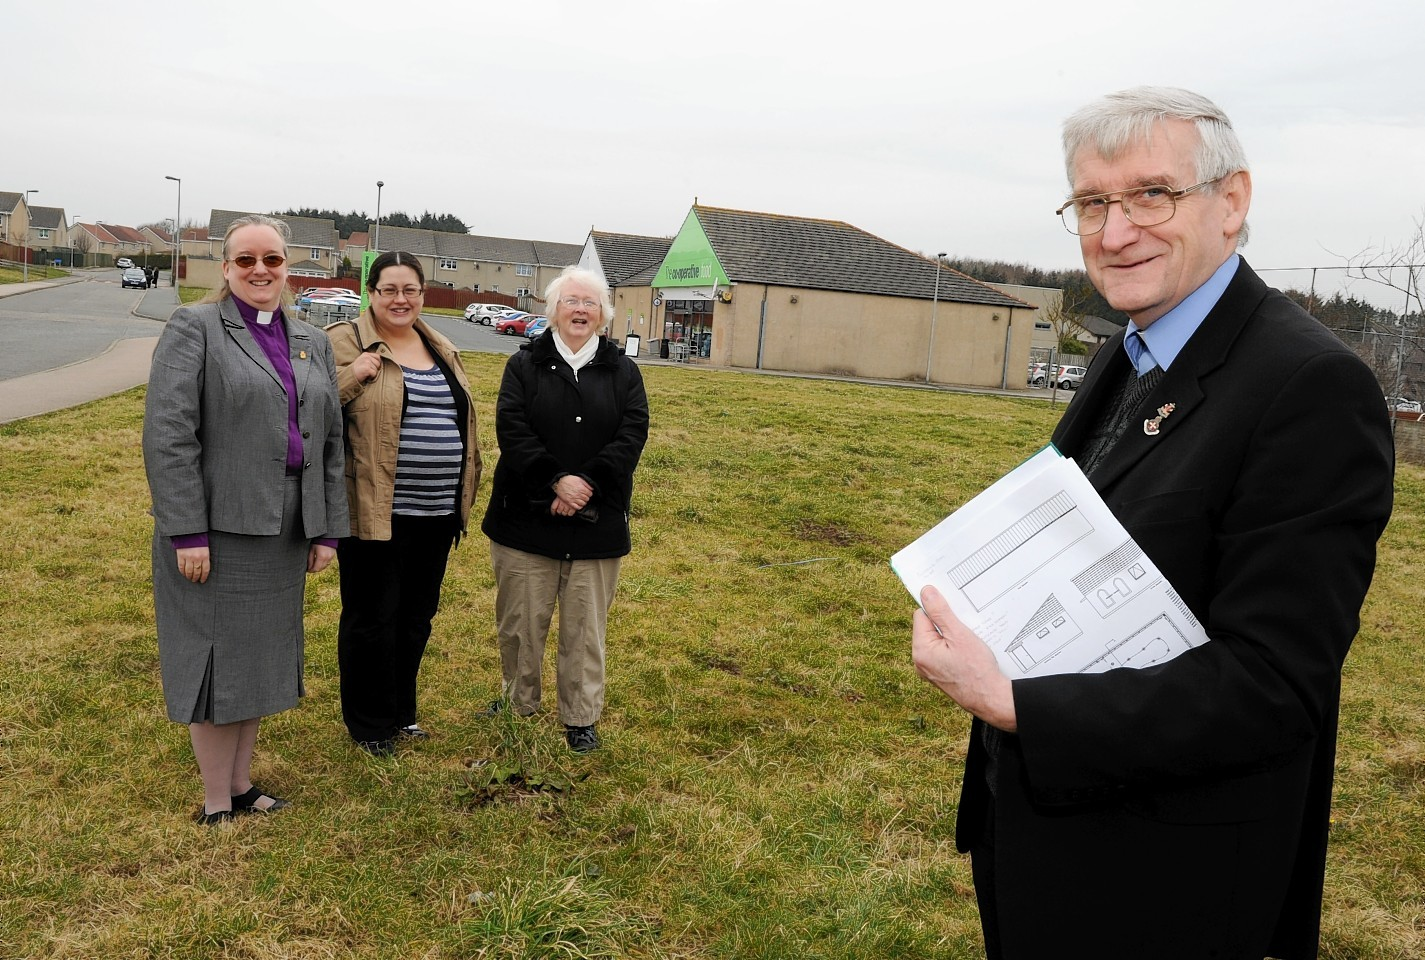 Reverend Andy Cowie with members of the Balmedie Congregational Church